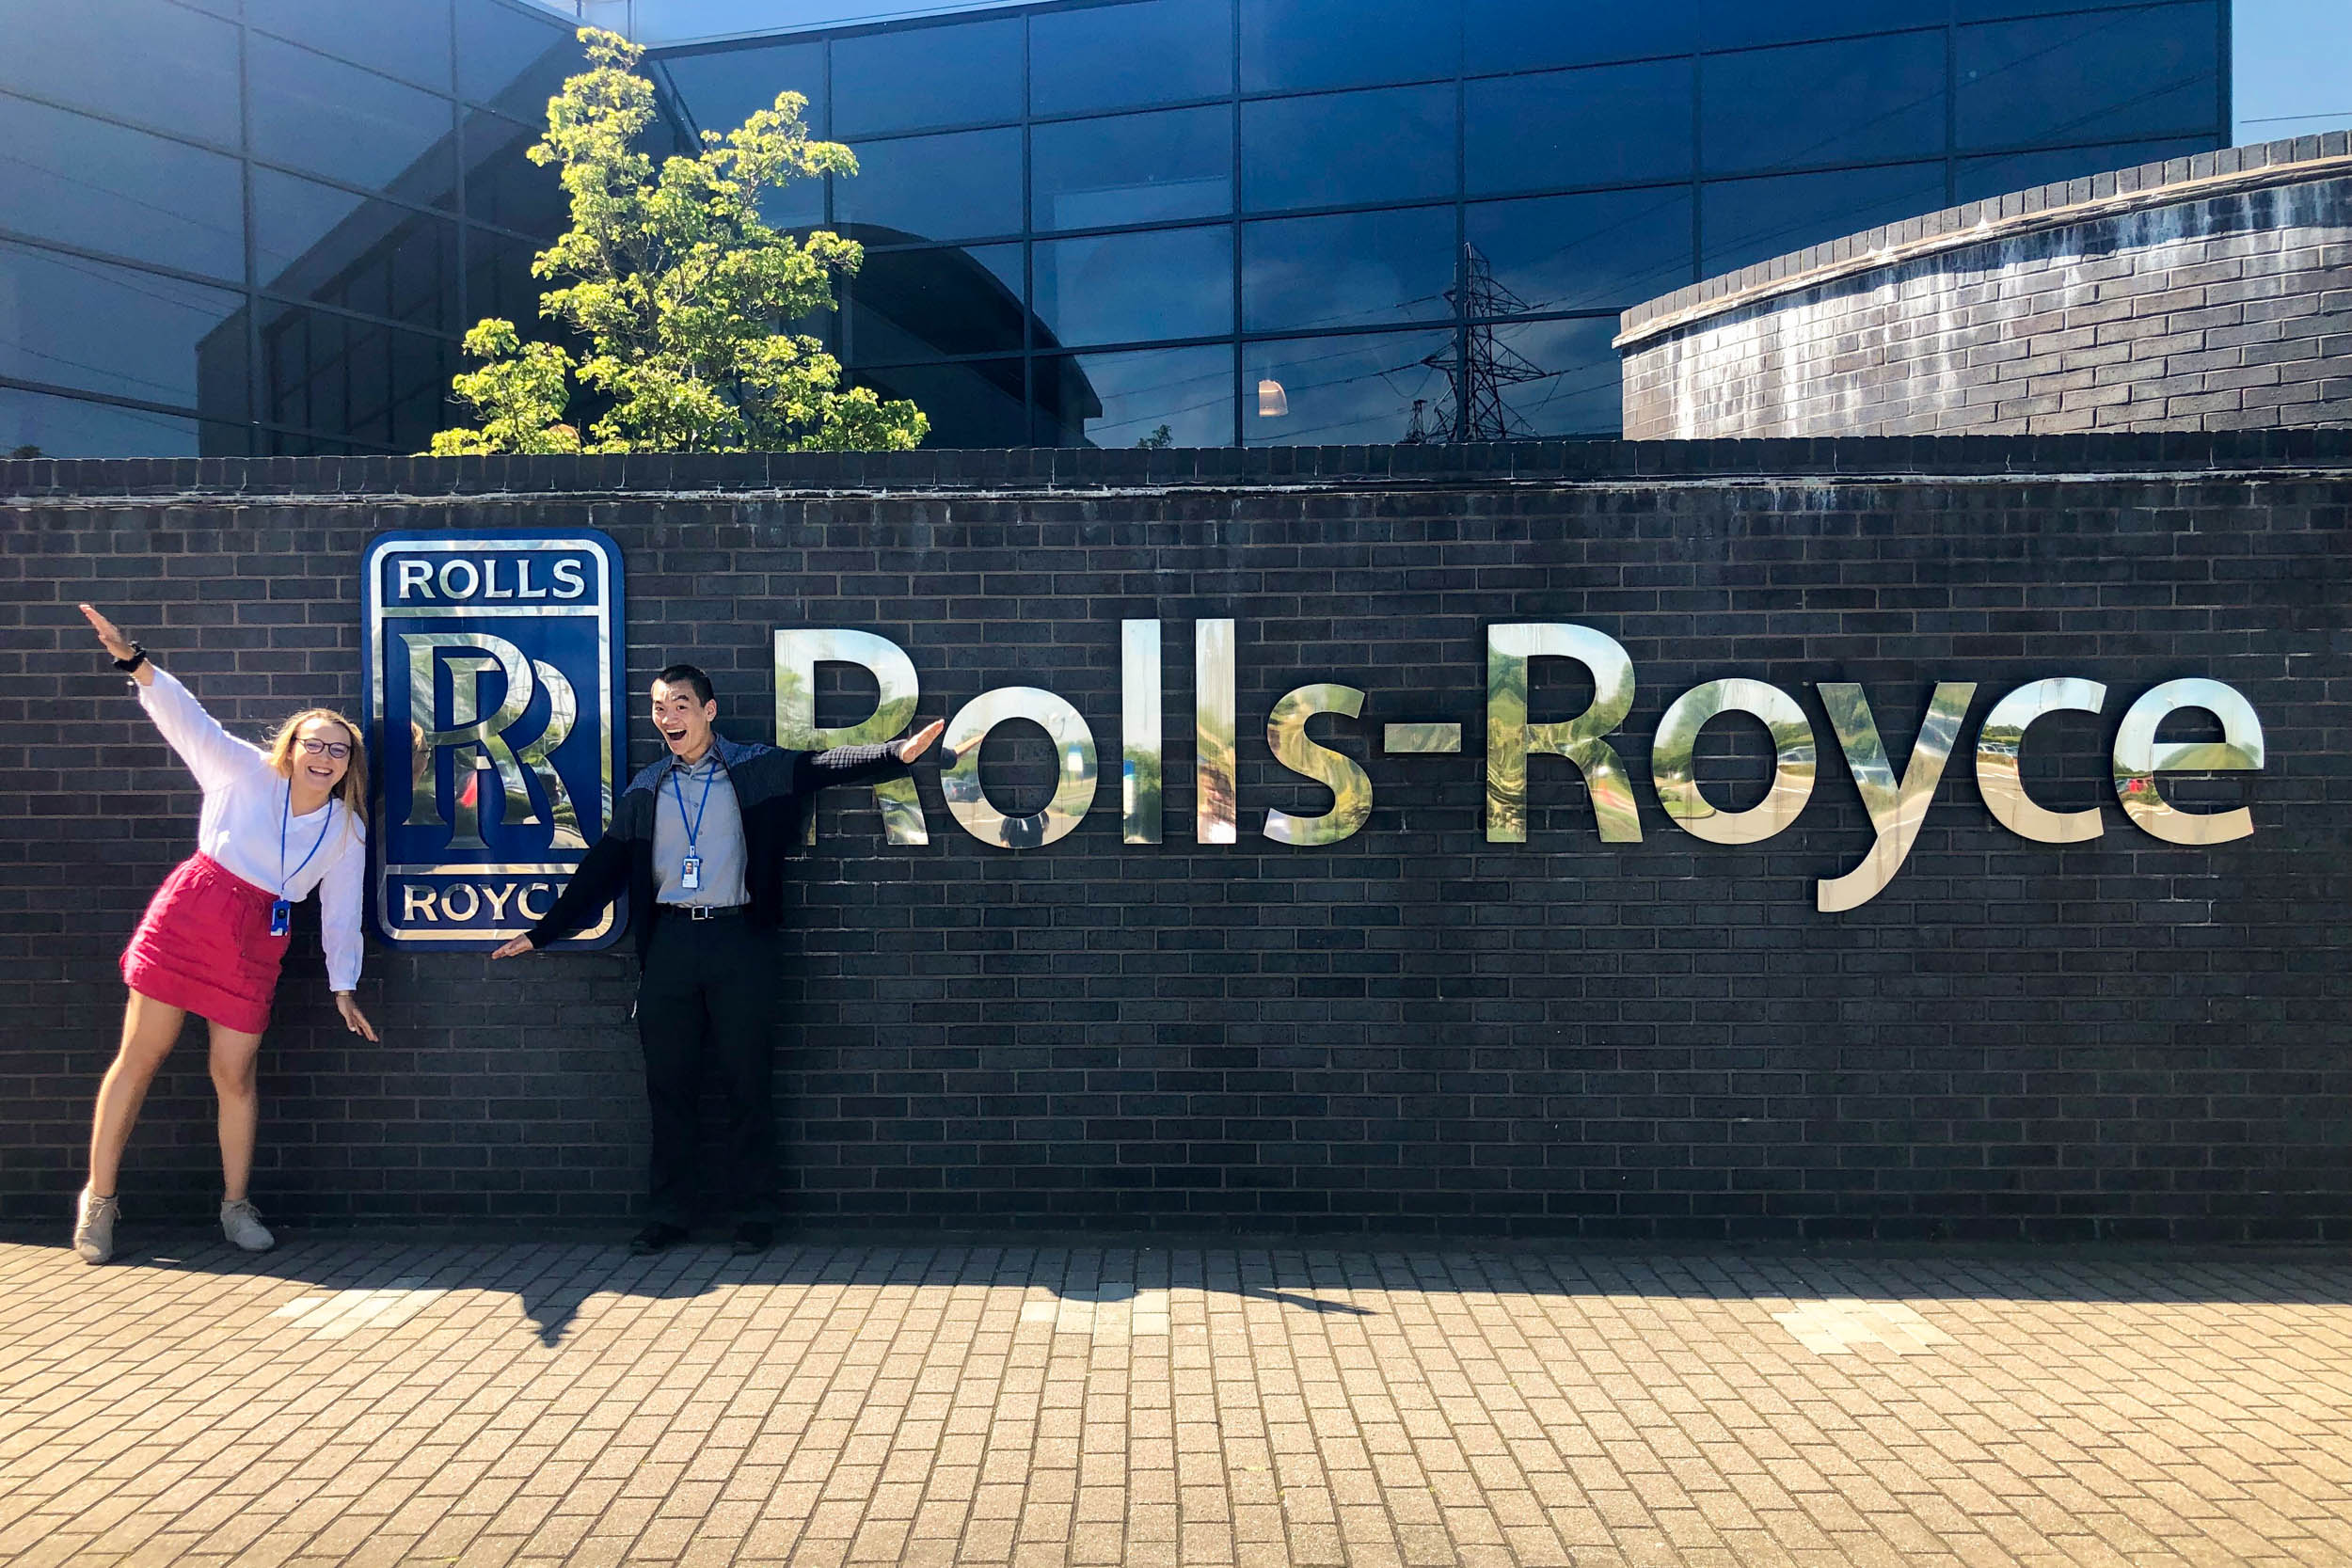 Mechanical engineering students Emily Davenport and David Xiao pose in front of the Rolls Royce building where they have been interning in Derby, United Kingdom.